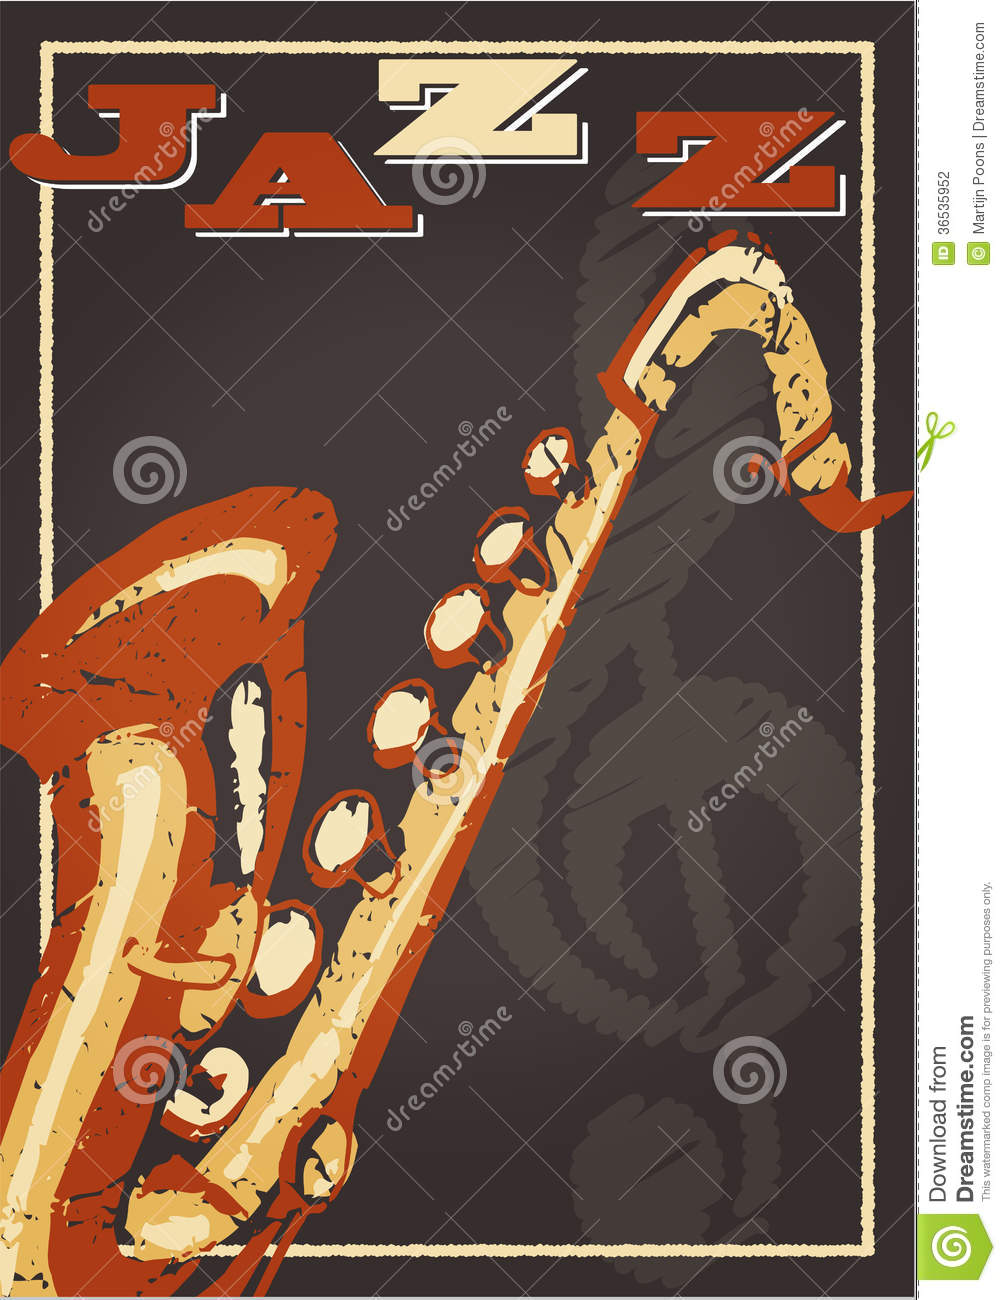 Jazz Poster Stock Photography - Image: 36535952